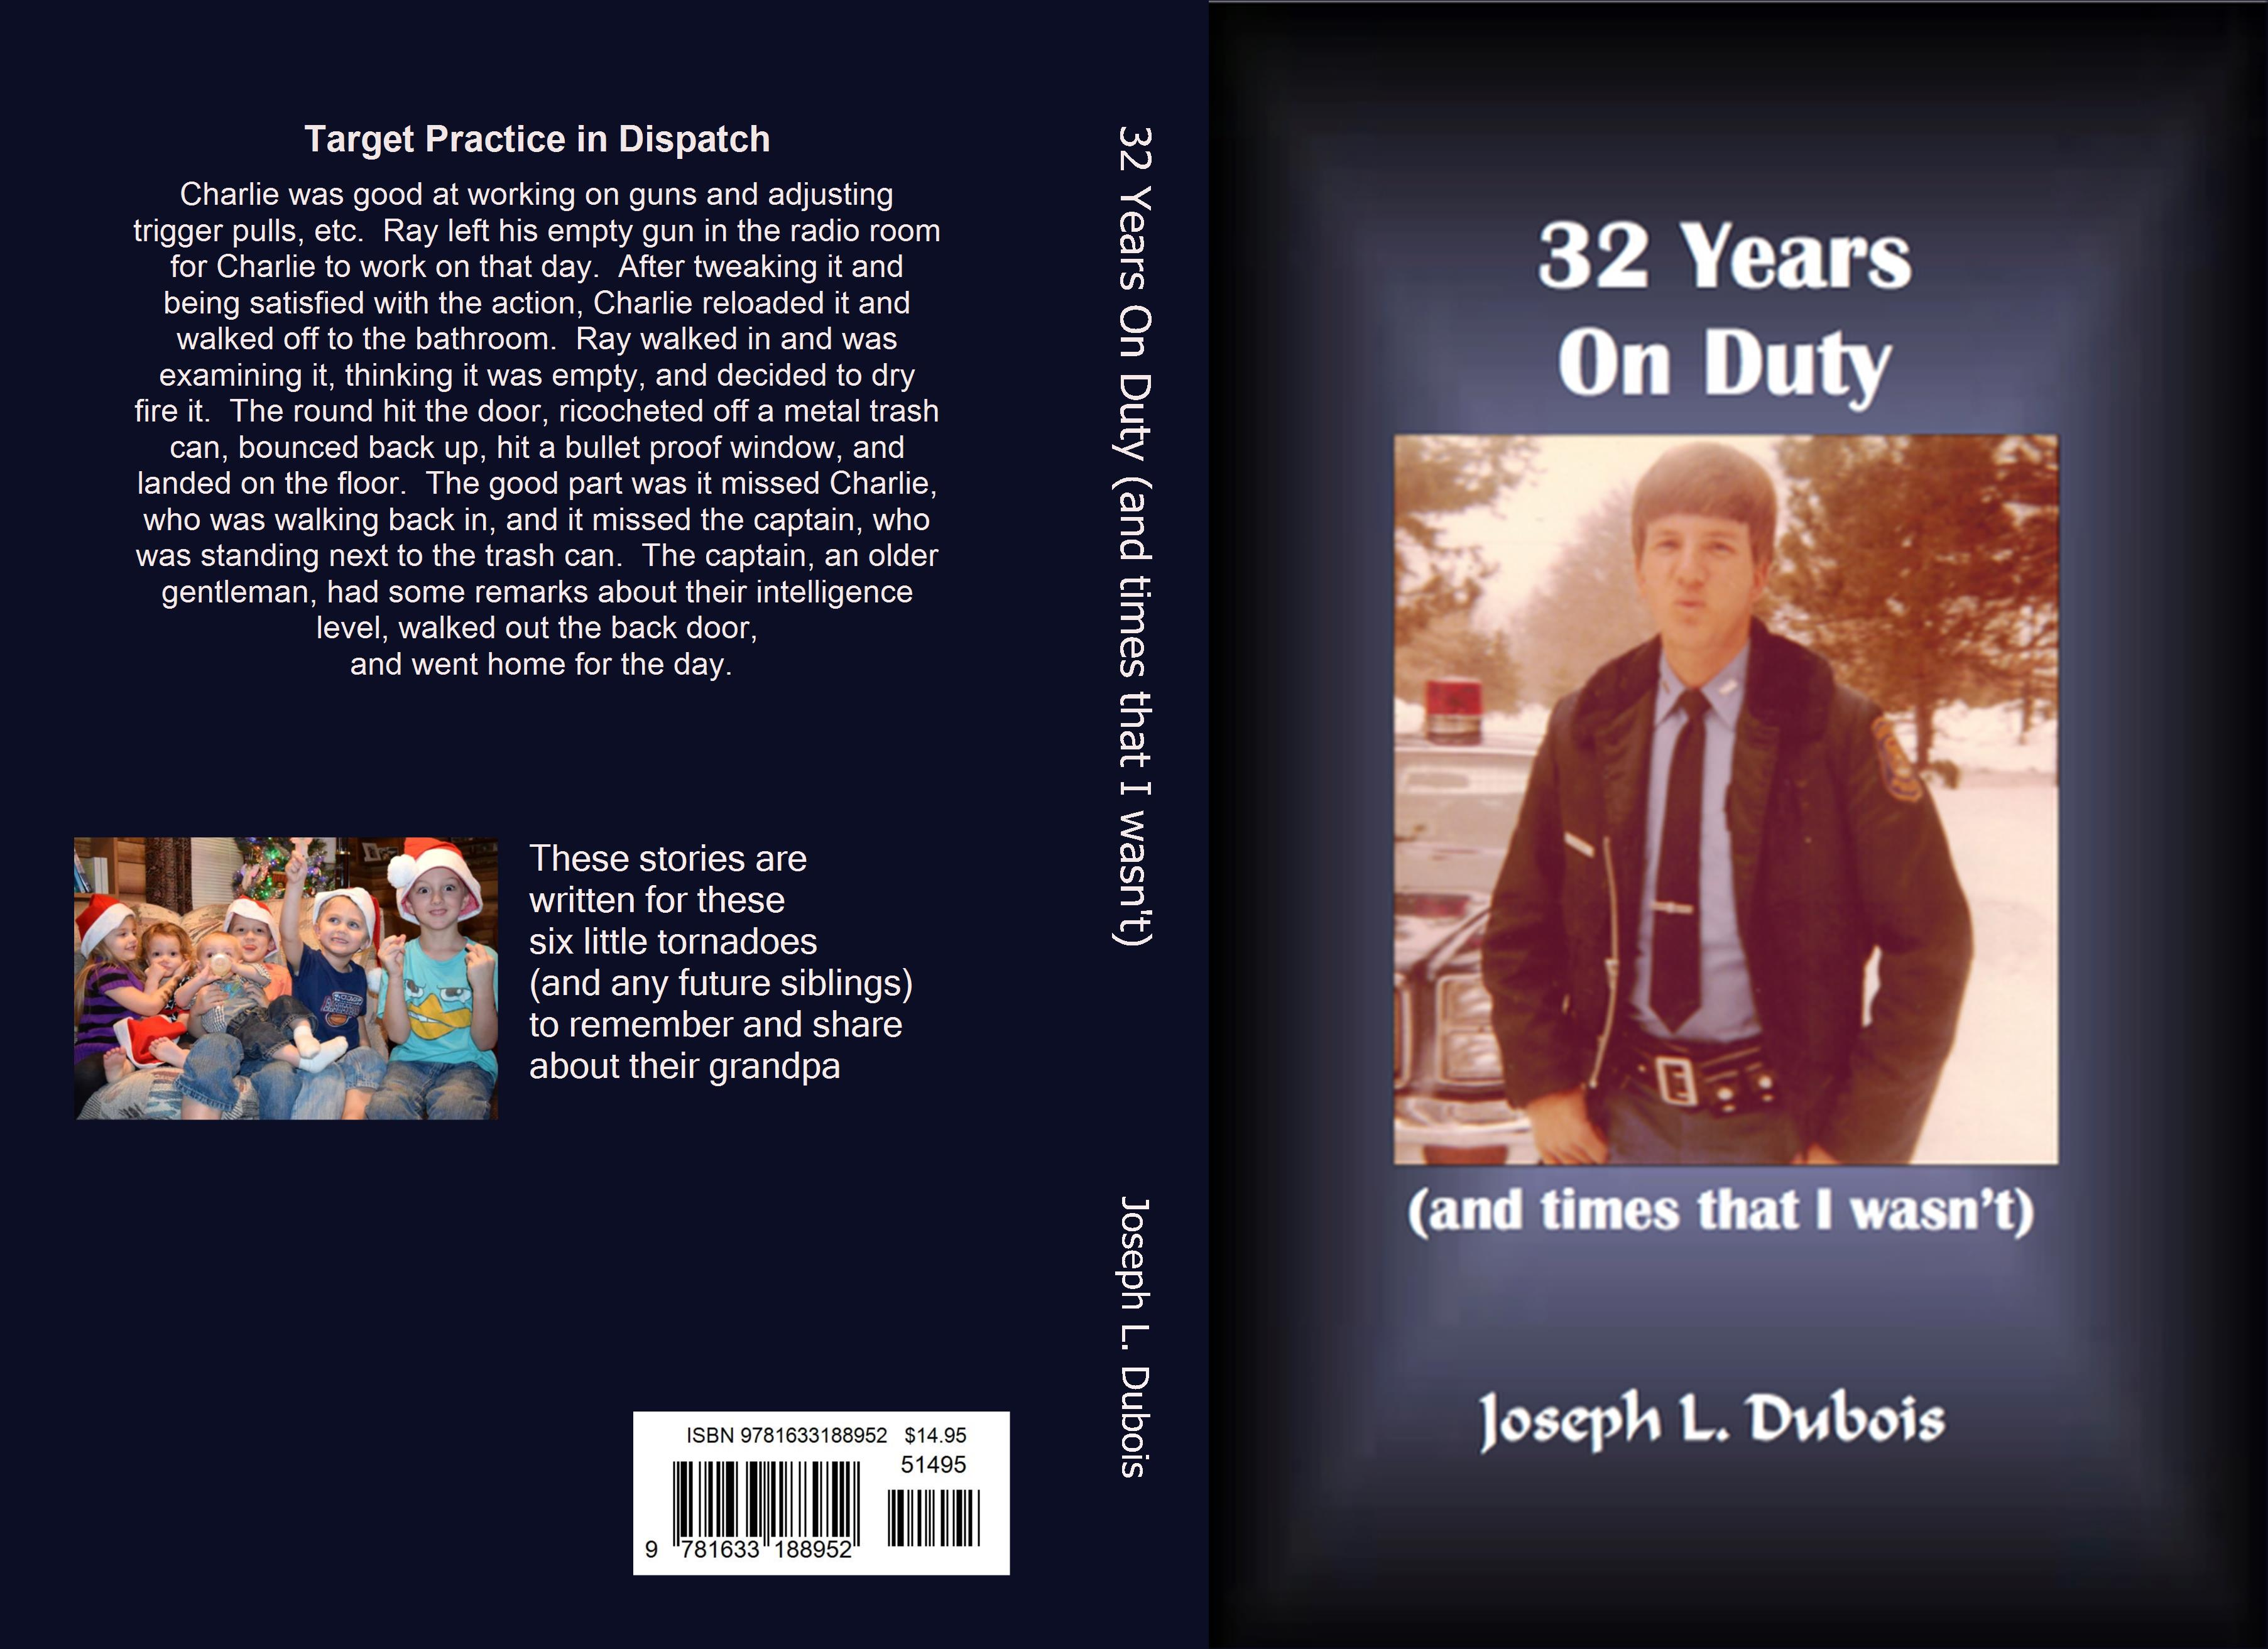 32 Years On Duty (and times that I wasn